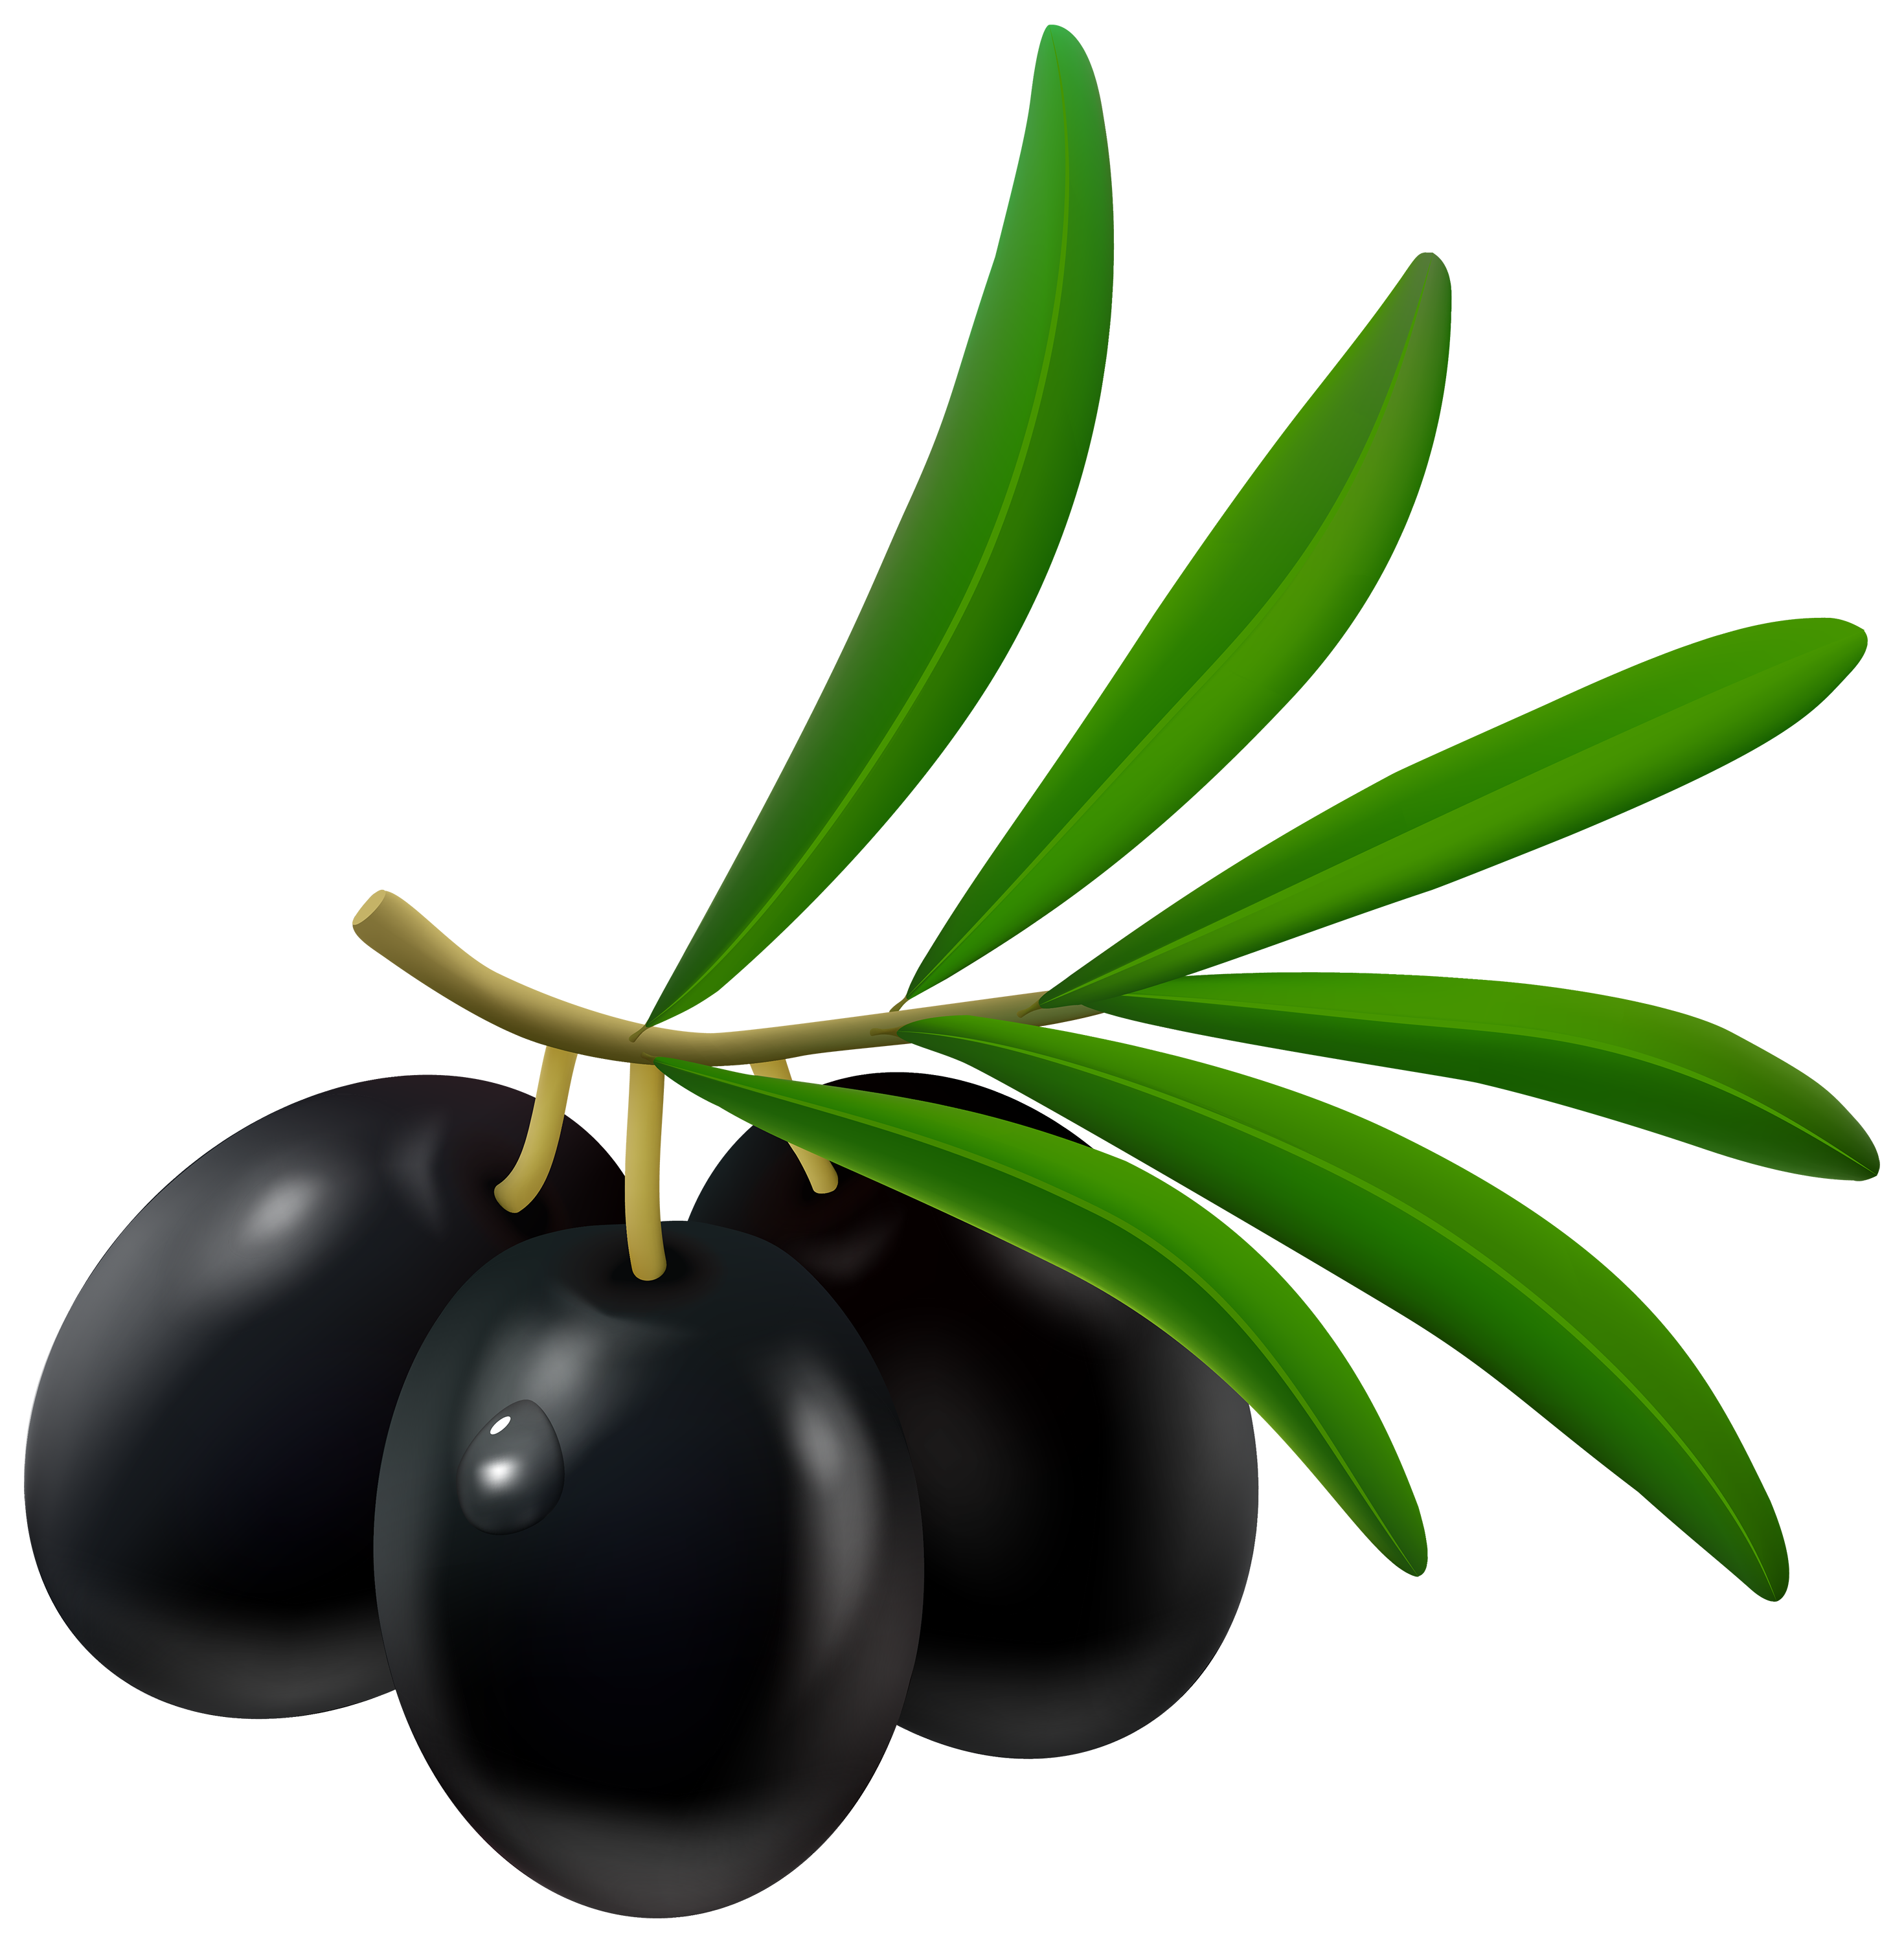 2940x3000 Olive Clipart Amp Look At Olive Clip Art Images